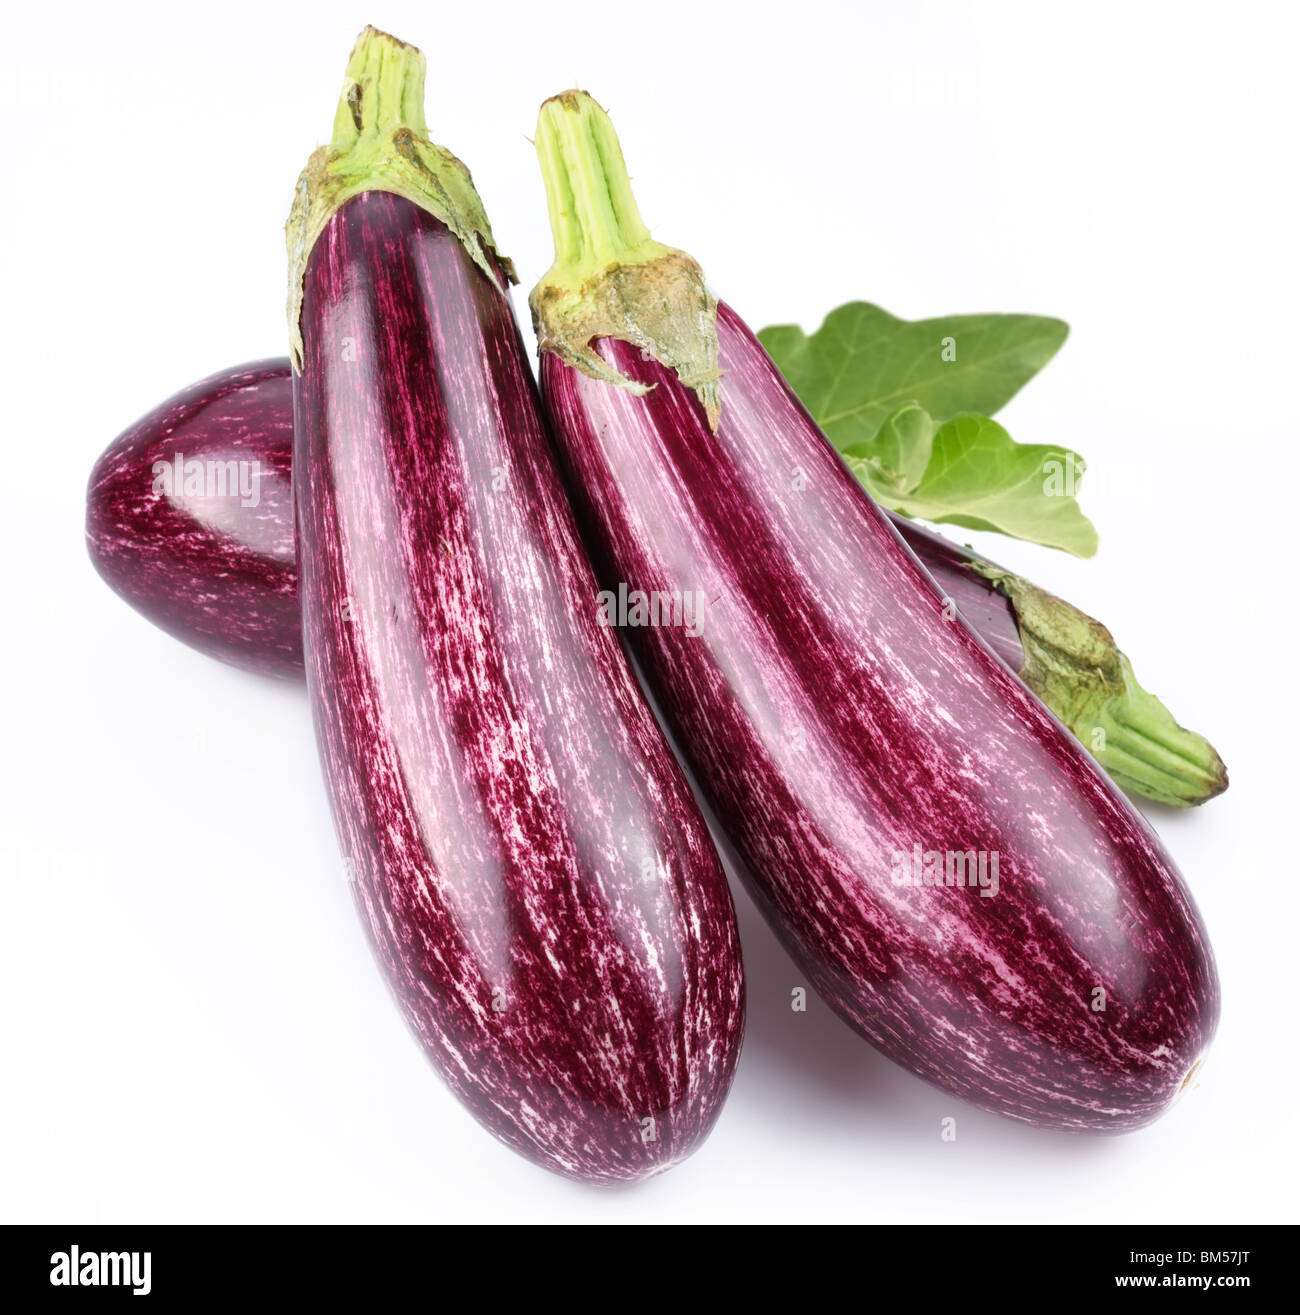 Purple eggplants with leaves on white background Stock Photo